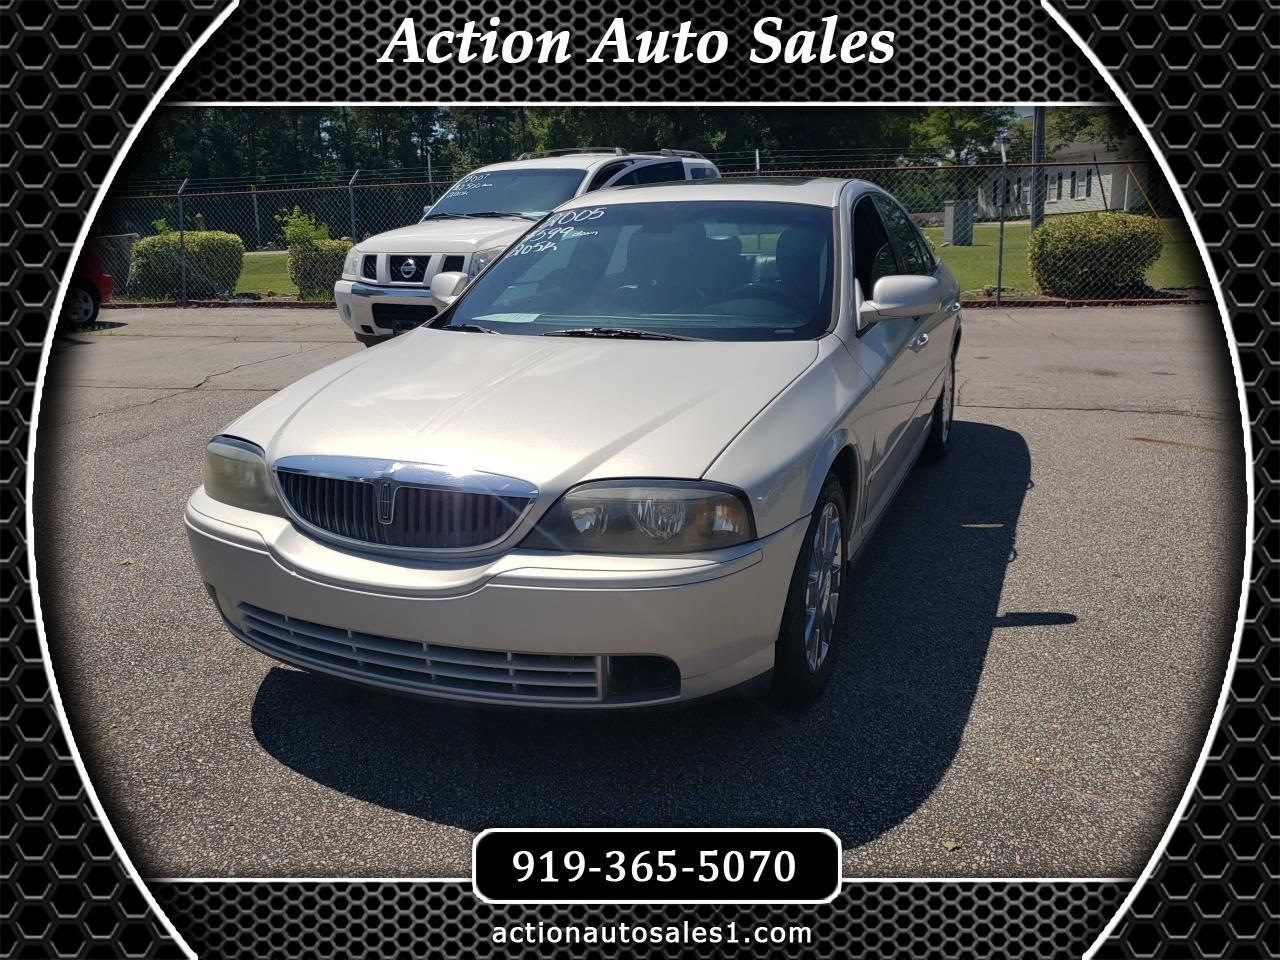 2005 Lincoln LS $599